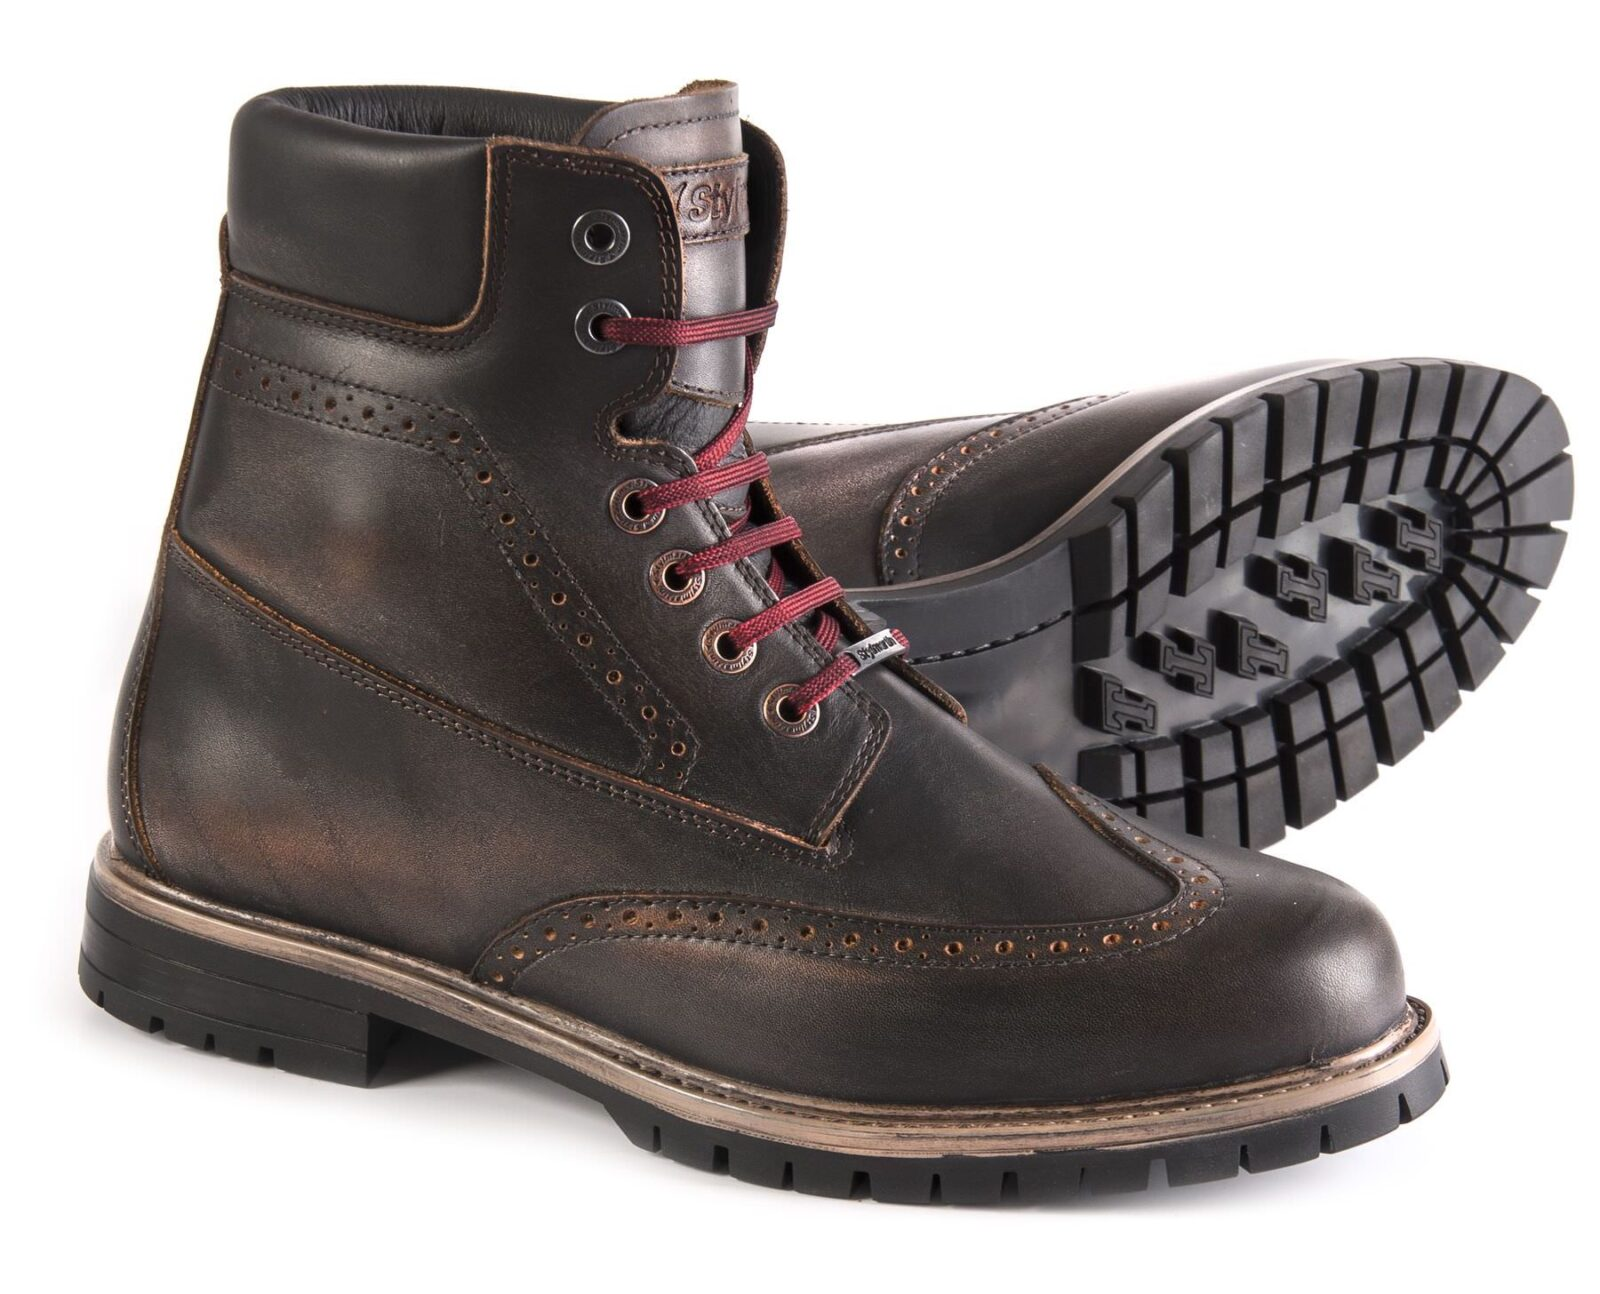 Stylmartin Wave Boots